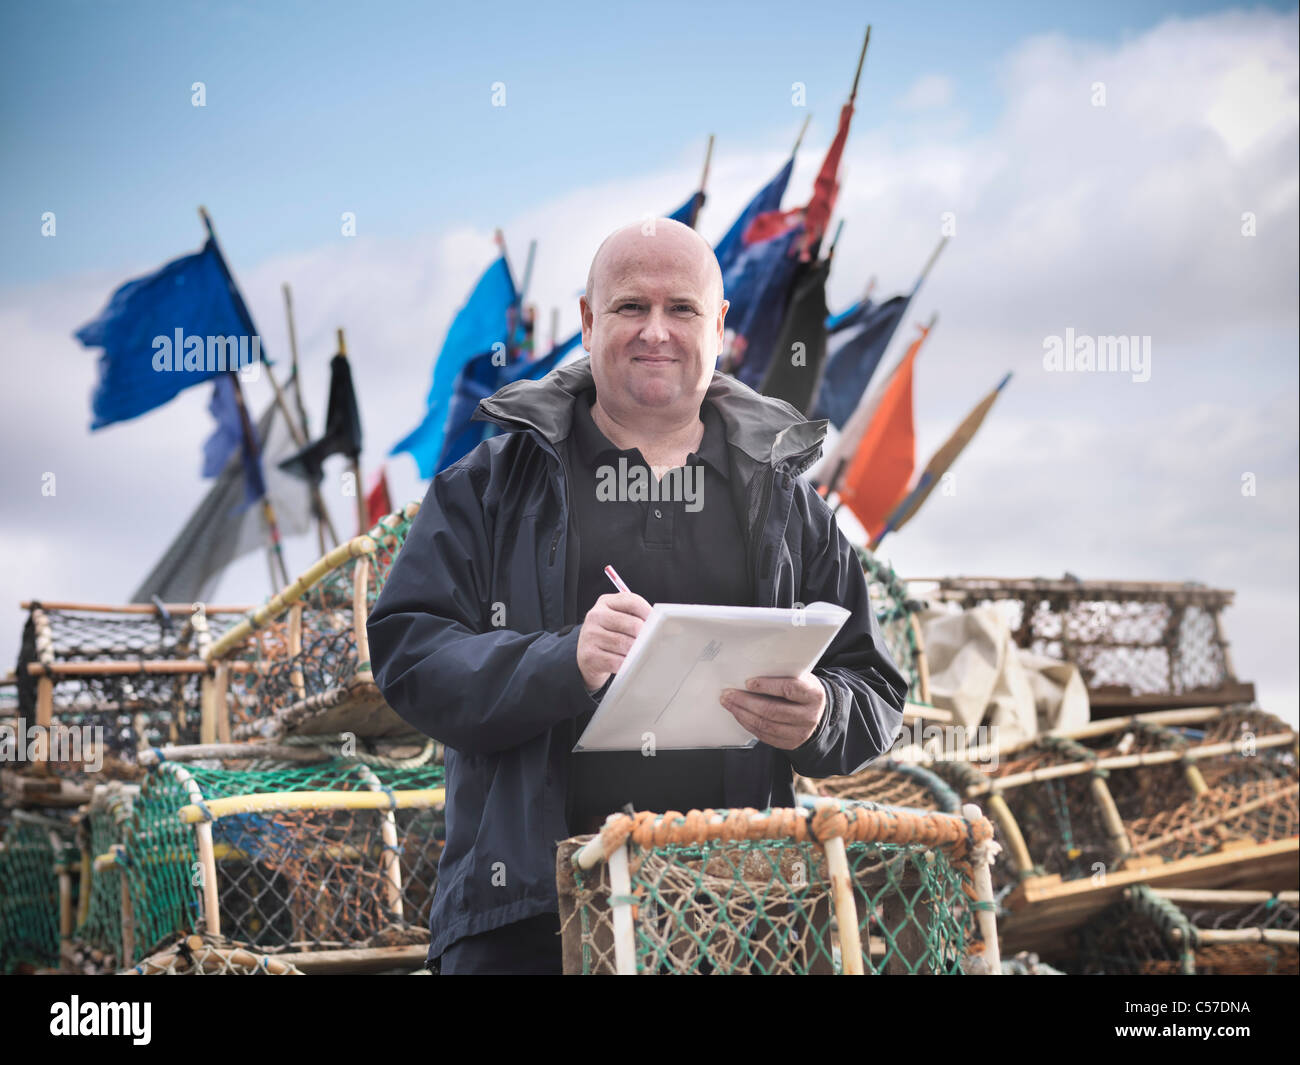 Fish inspector with lobster pots - Stock Image